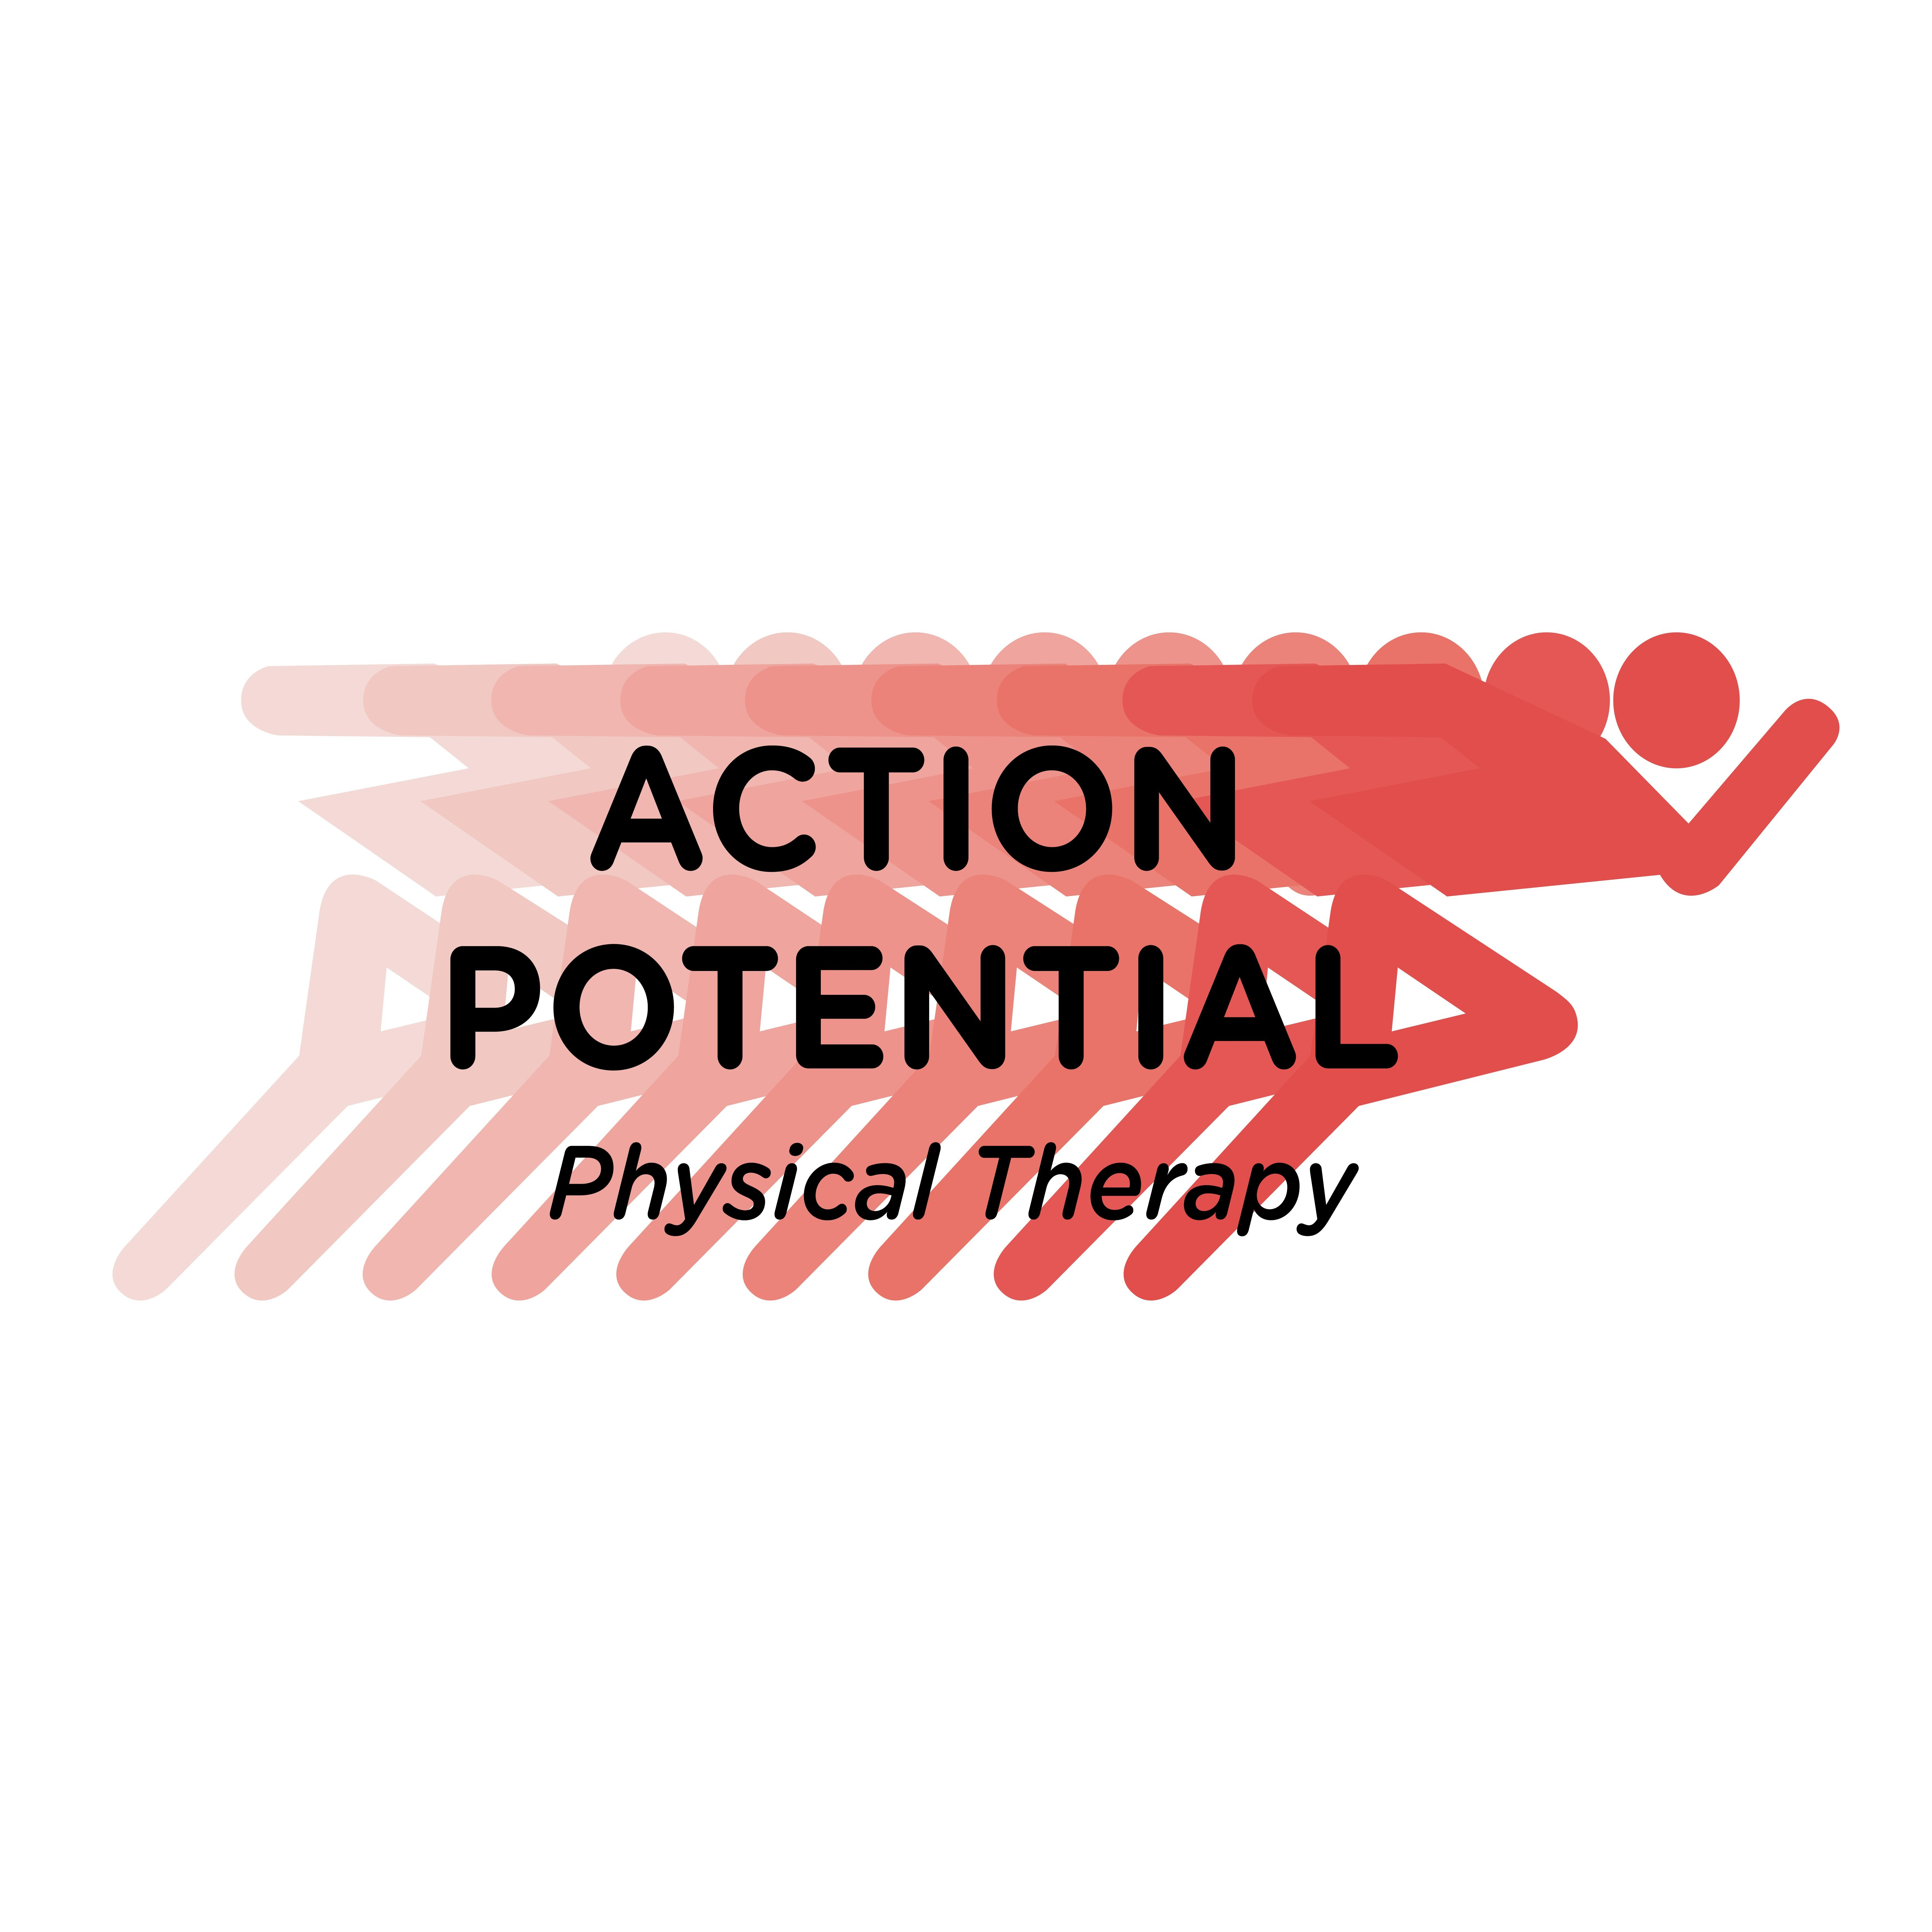 Action Potential Physical Therapy